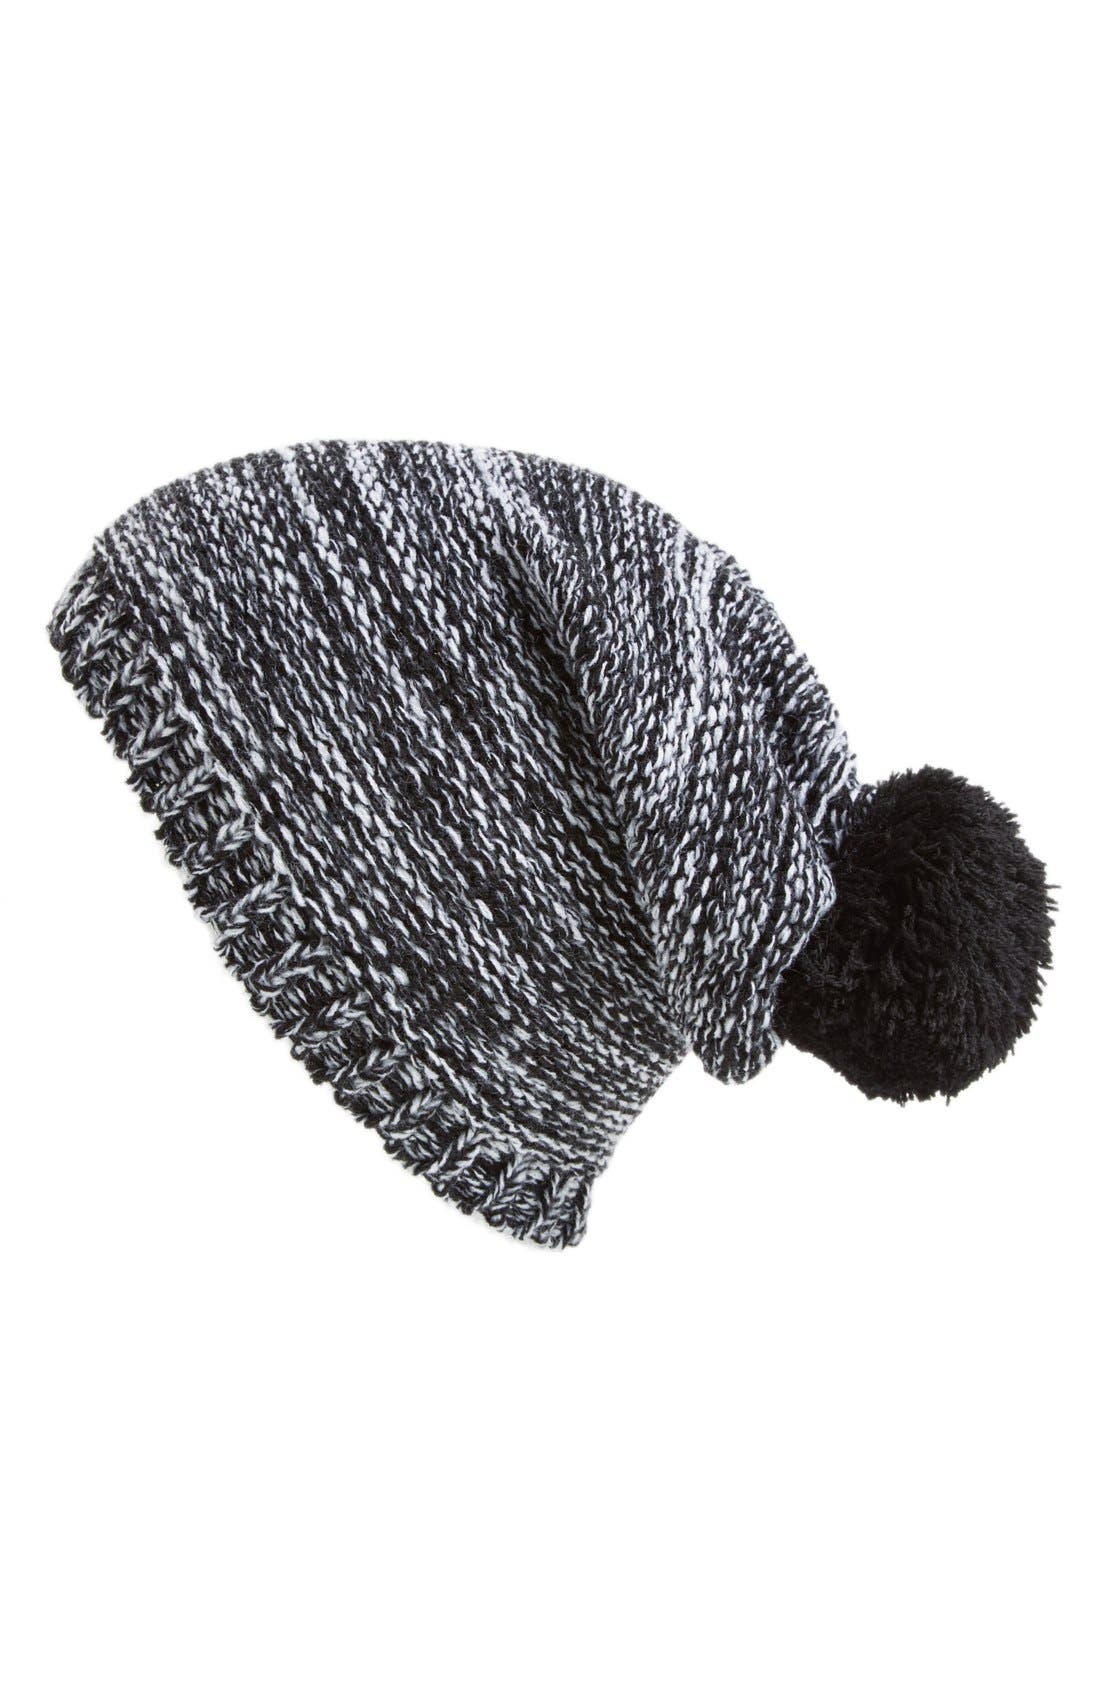 Alternate Image 1 Selected - Capelli of New York Marled Knit Beanie (Juniors)